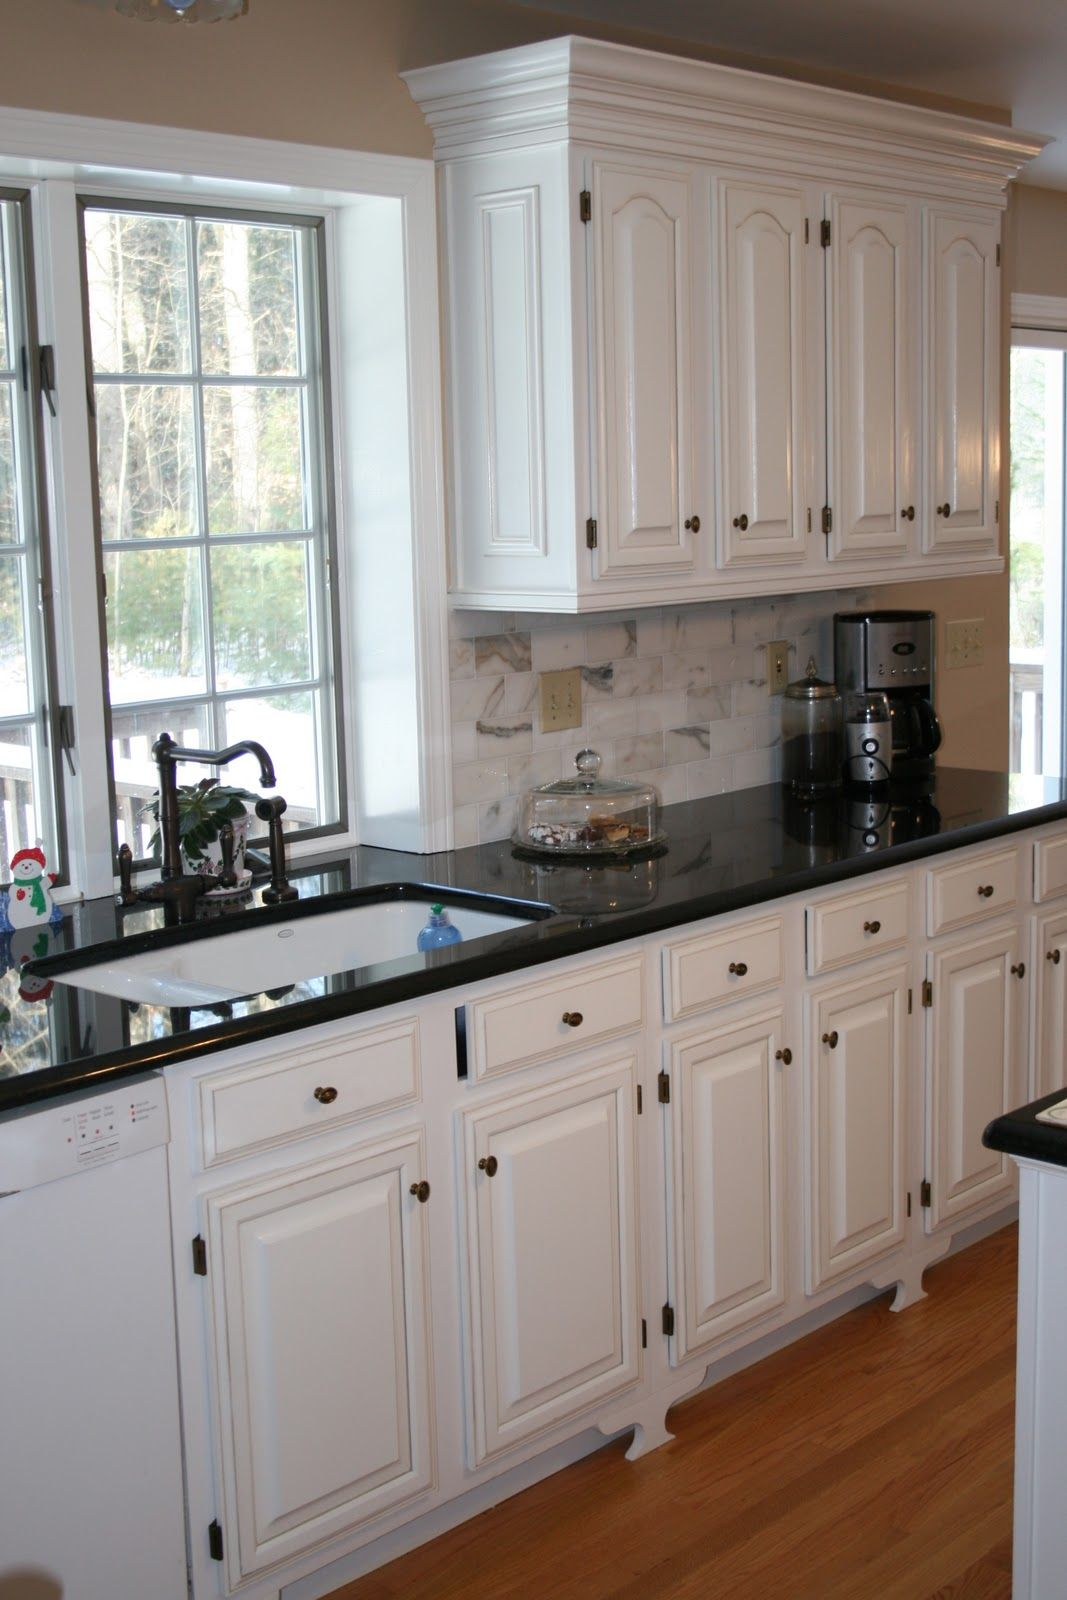 White Cabinets Black Countertops And That Faucet